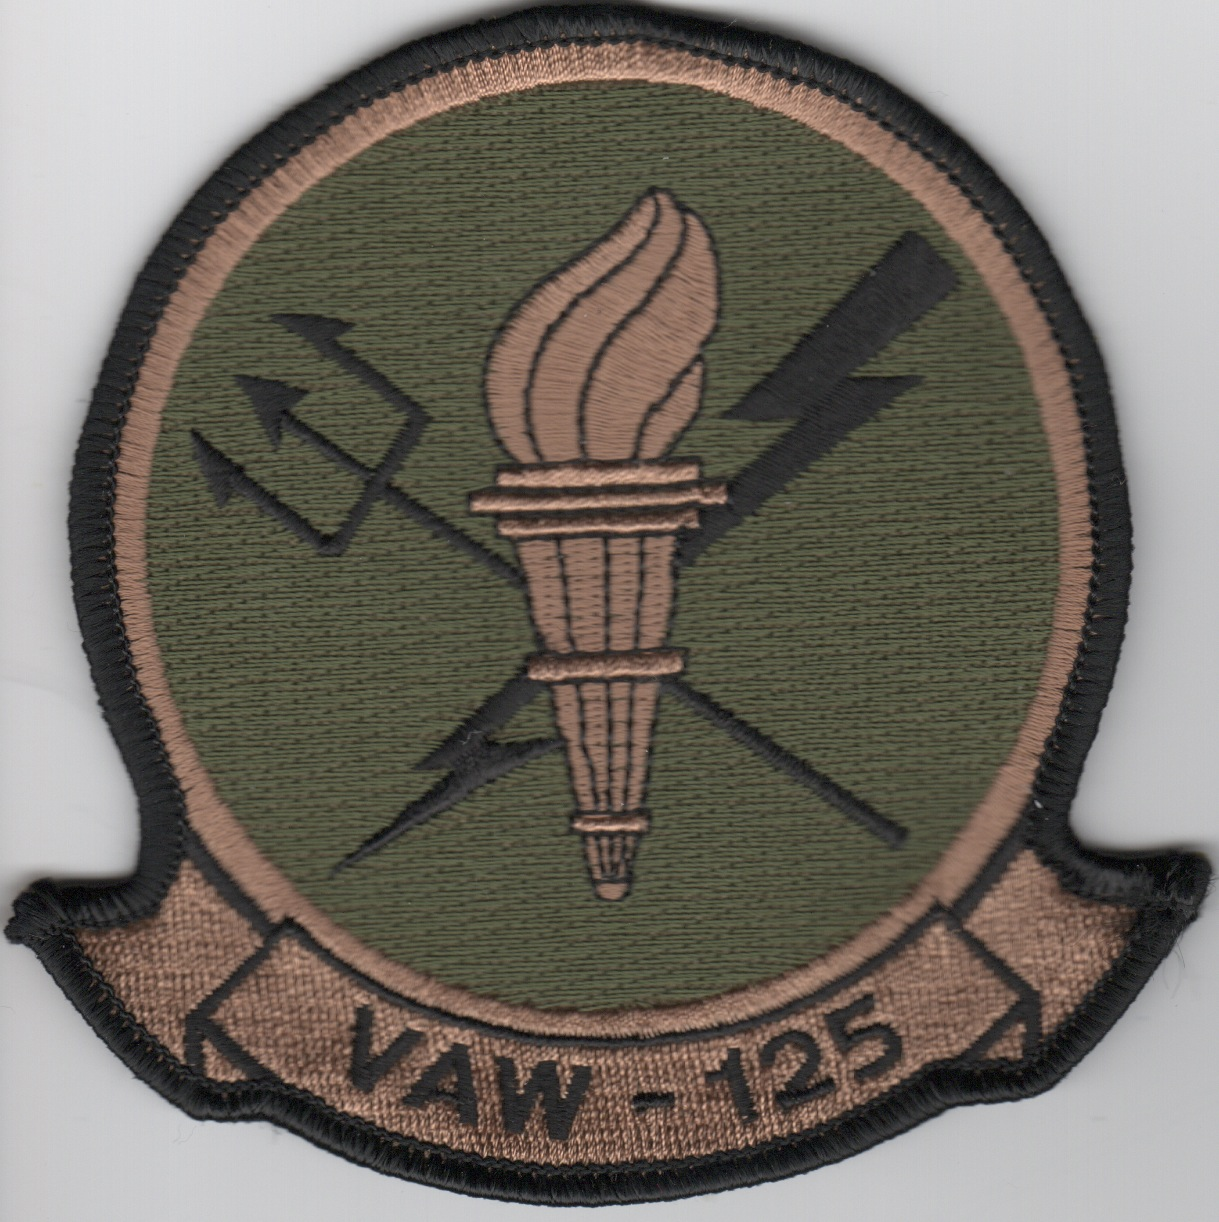 VAW-125 Squadron Patch (Subd)